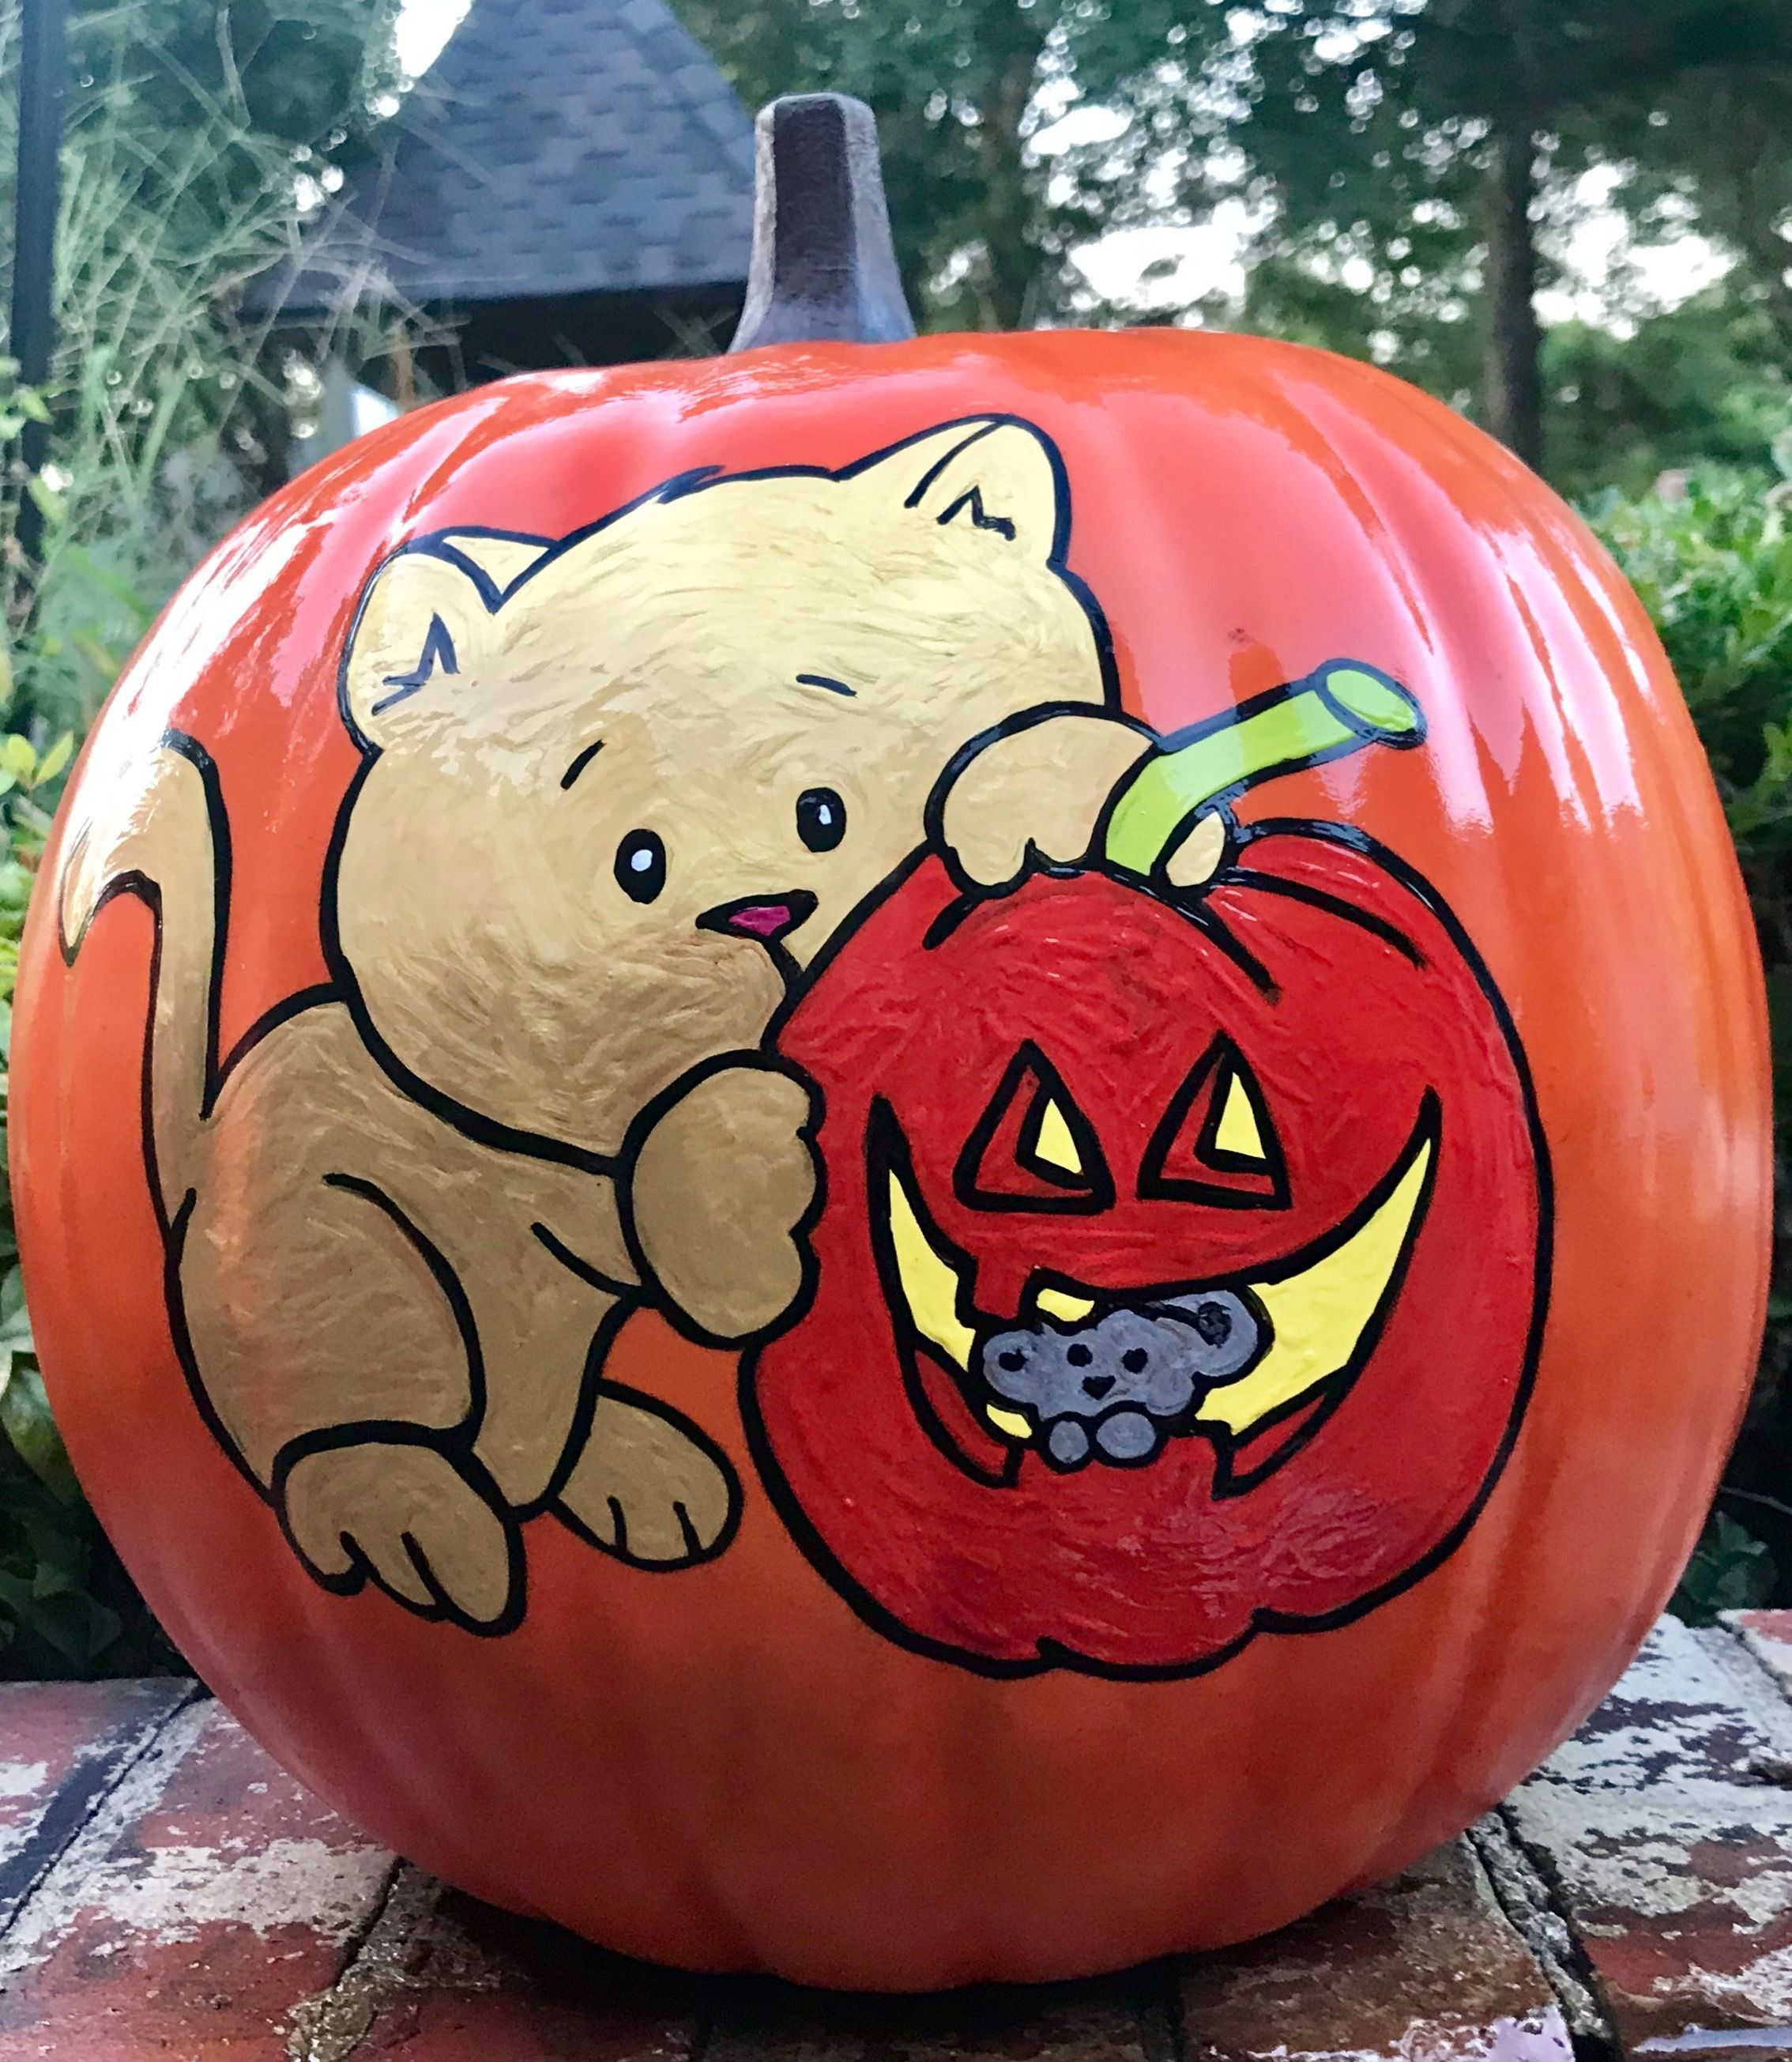 Pin by SMD, Inc. on The Pumpkin Whisperer Painted